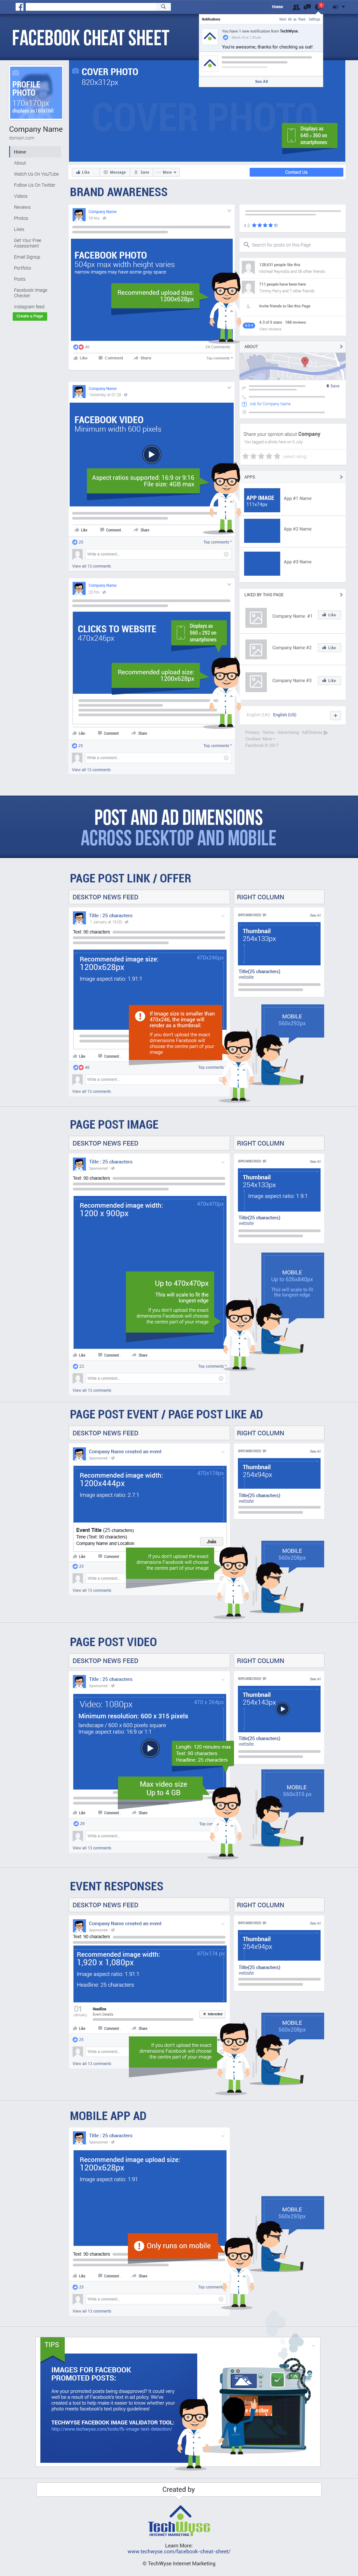 Facebook Image Sizes Cheat Sheet (2017)